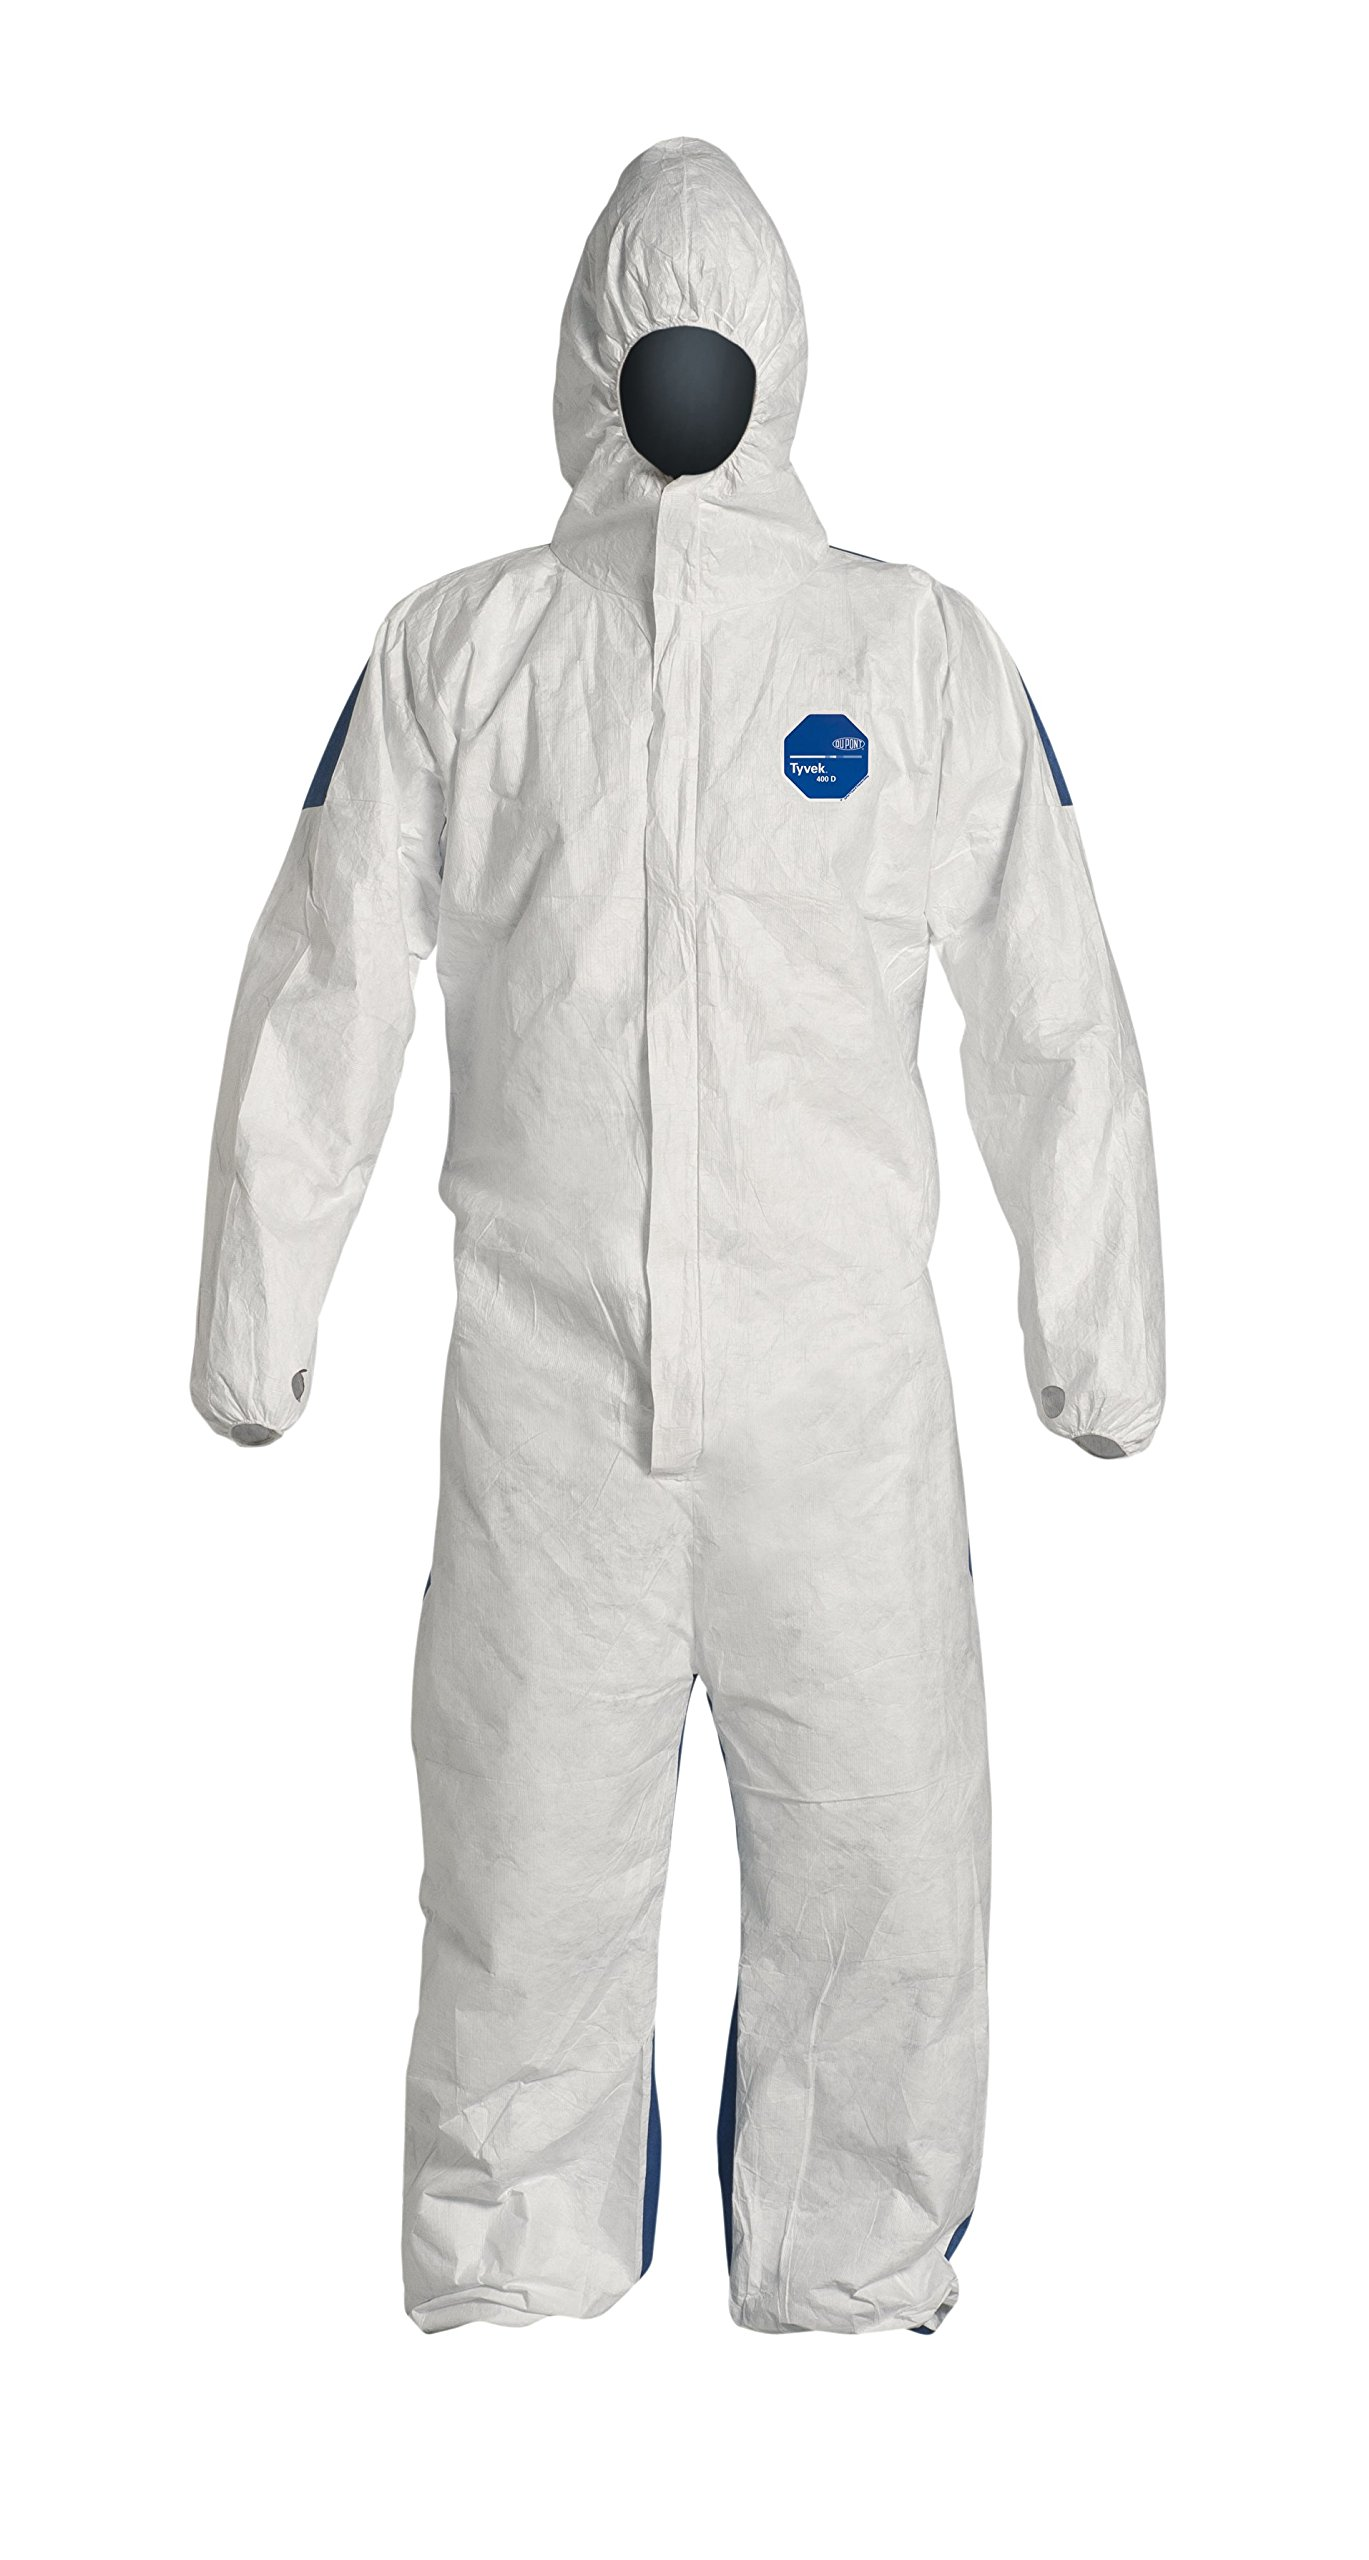 DuPont Tyvek 400D TD127S ProShield Protective Coverall with Zipper Front, Hood and Elastic Cuffs, White/Blue, 2X-Large (Pack of 25)